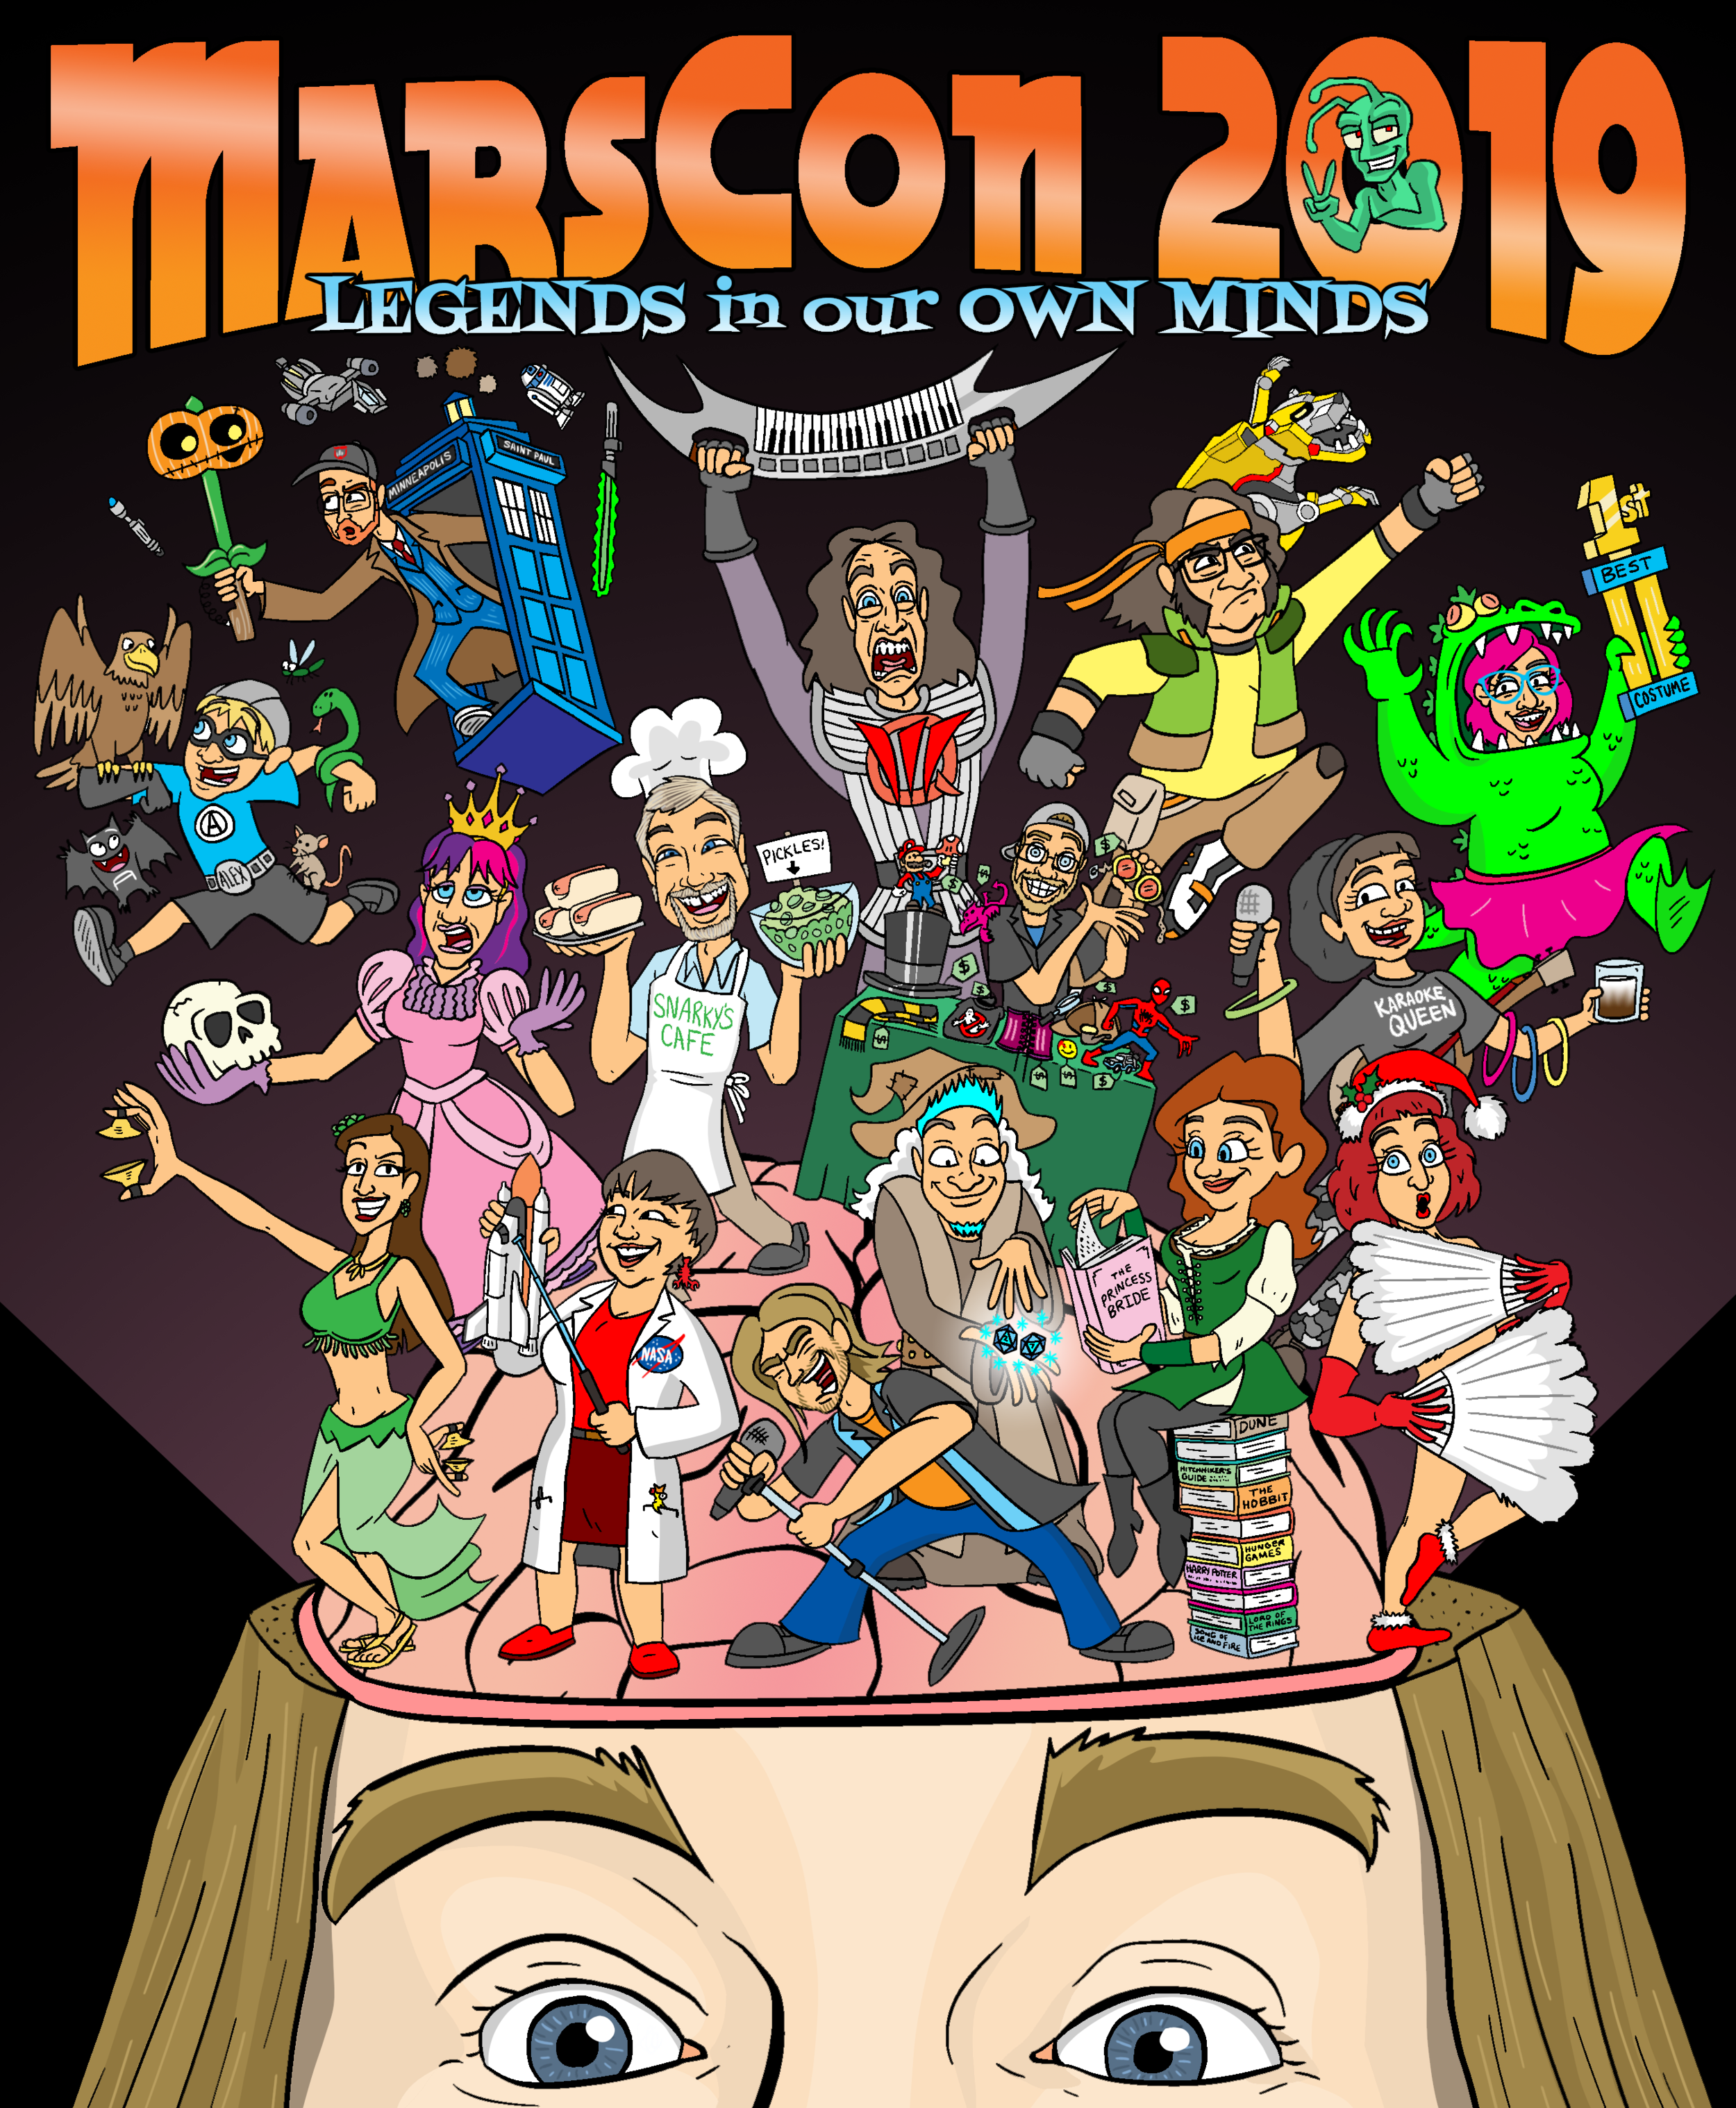 17 MarsCon Legends In Our Own Mind T-shirt design 2019.png